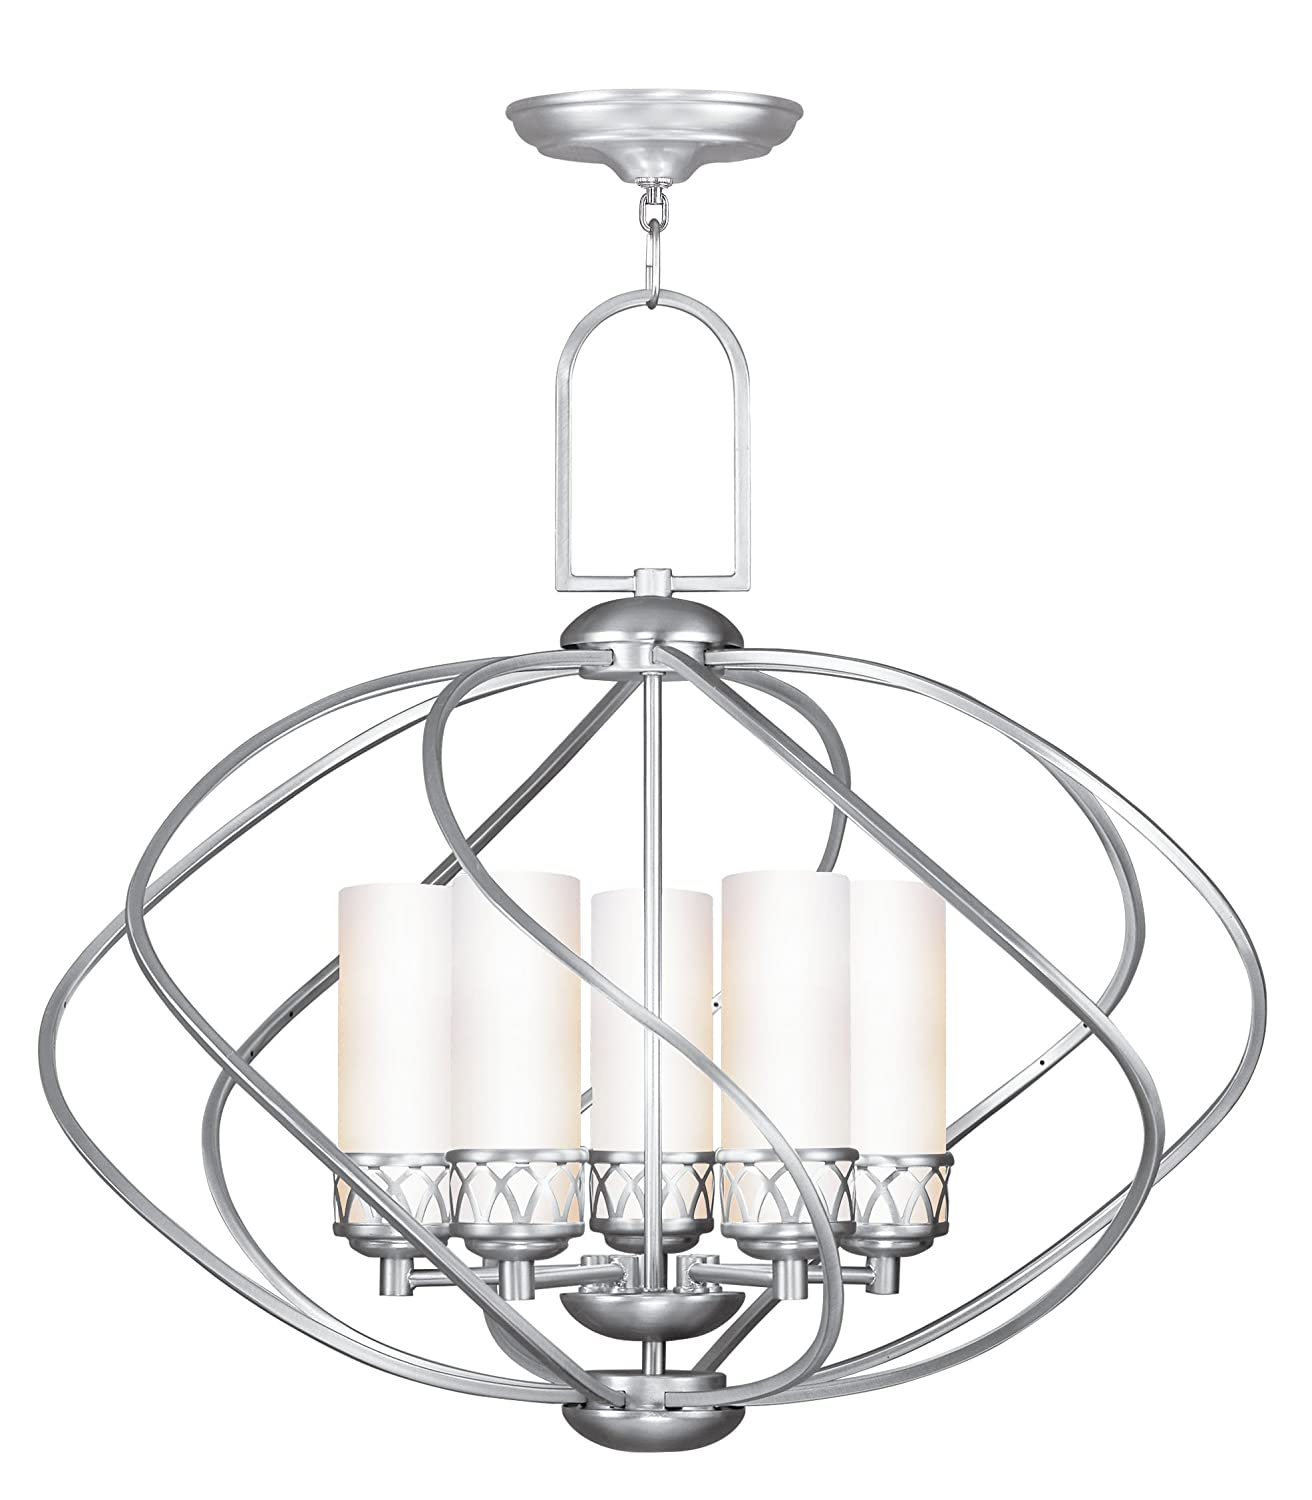 Livex lighting 4725 91 chandelier with hand blown satin white glass livex lighting 4725 91 chandelier with hand blown satin white glass shades brushed nickel amazon arubaitofo Choice Image